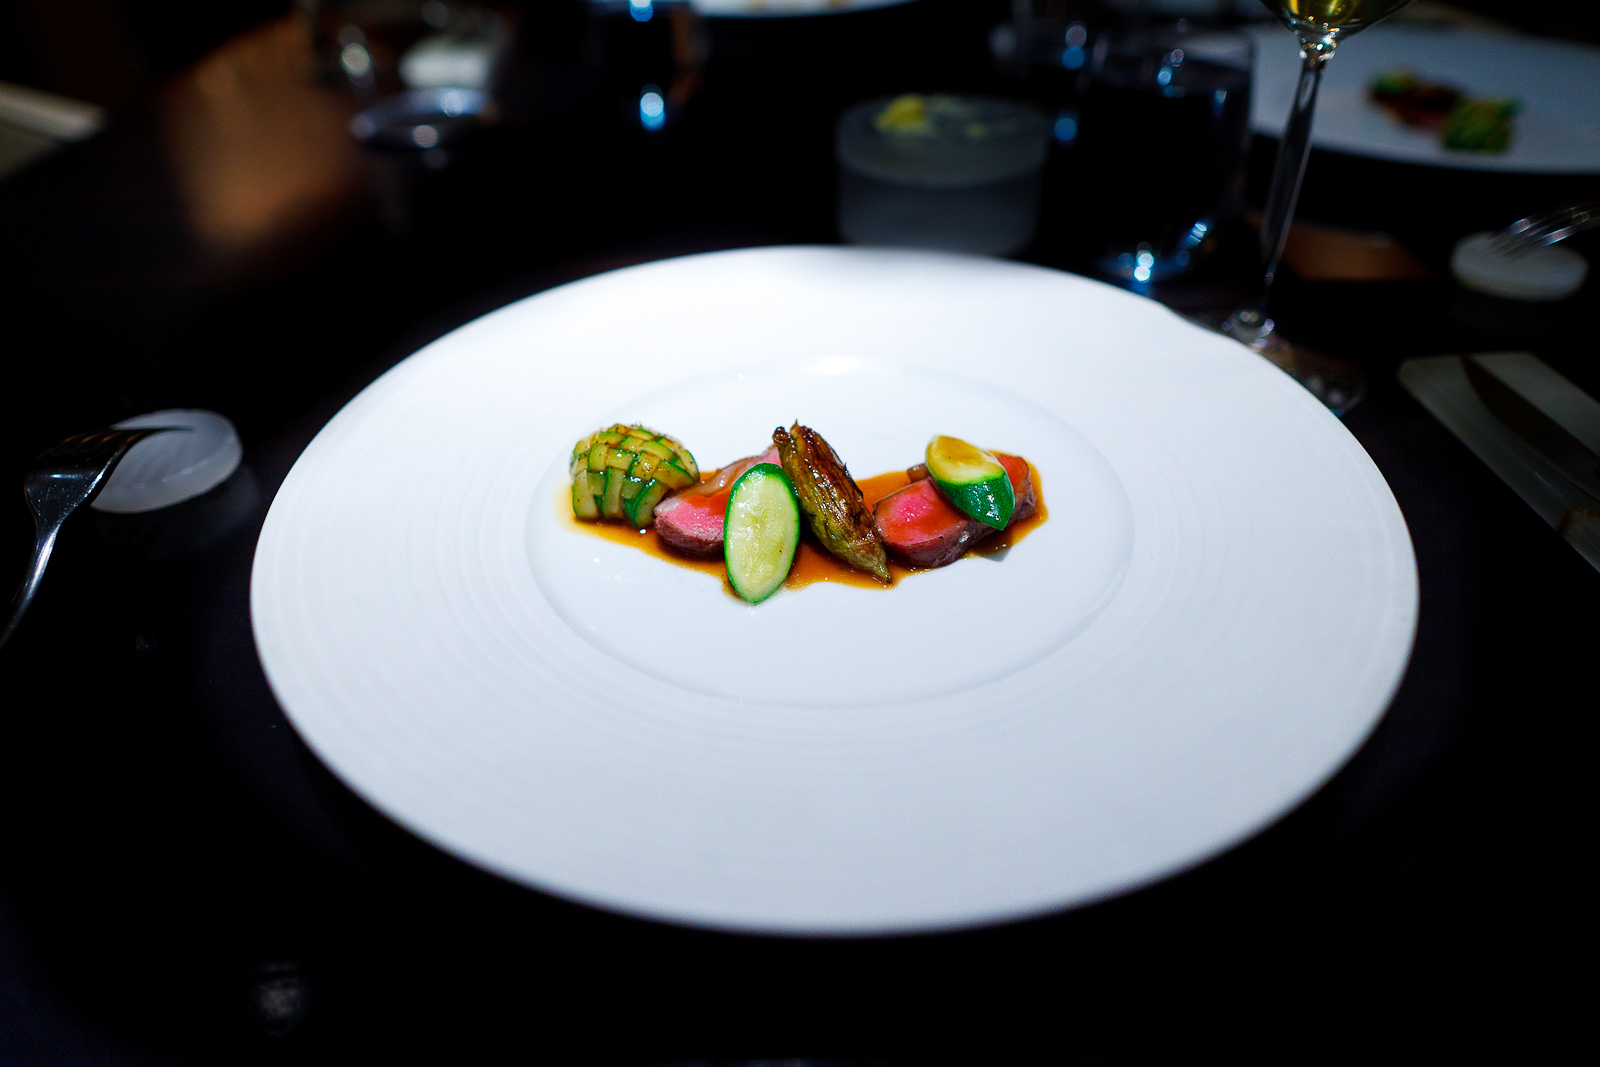 6th Course: Lamb loin, zucchini lattice, sweetbreads, squash blossom